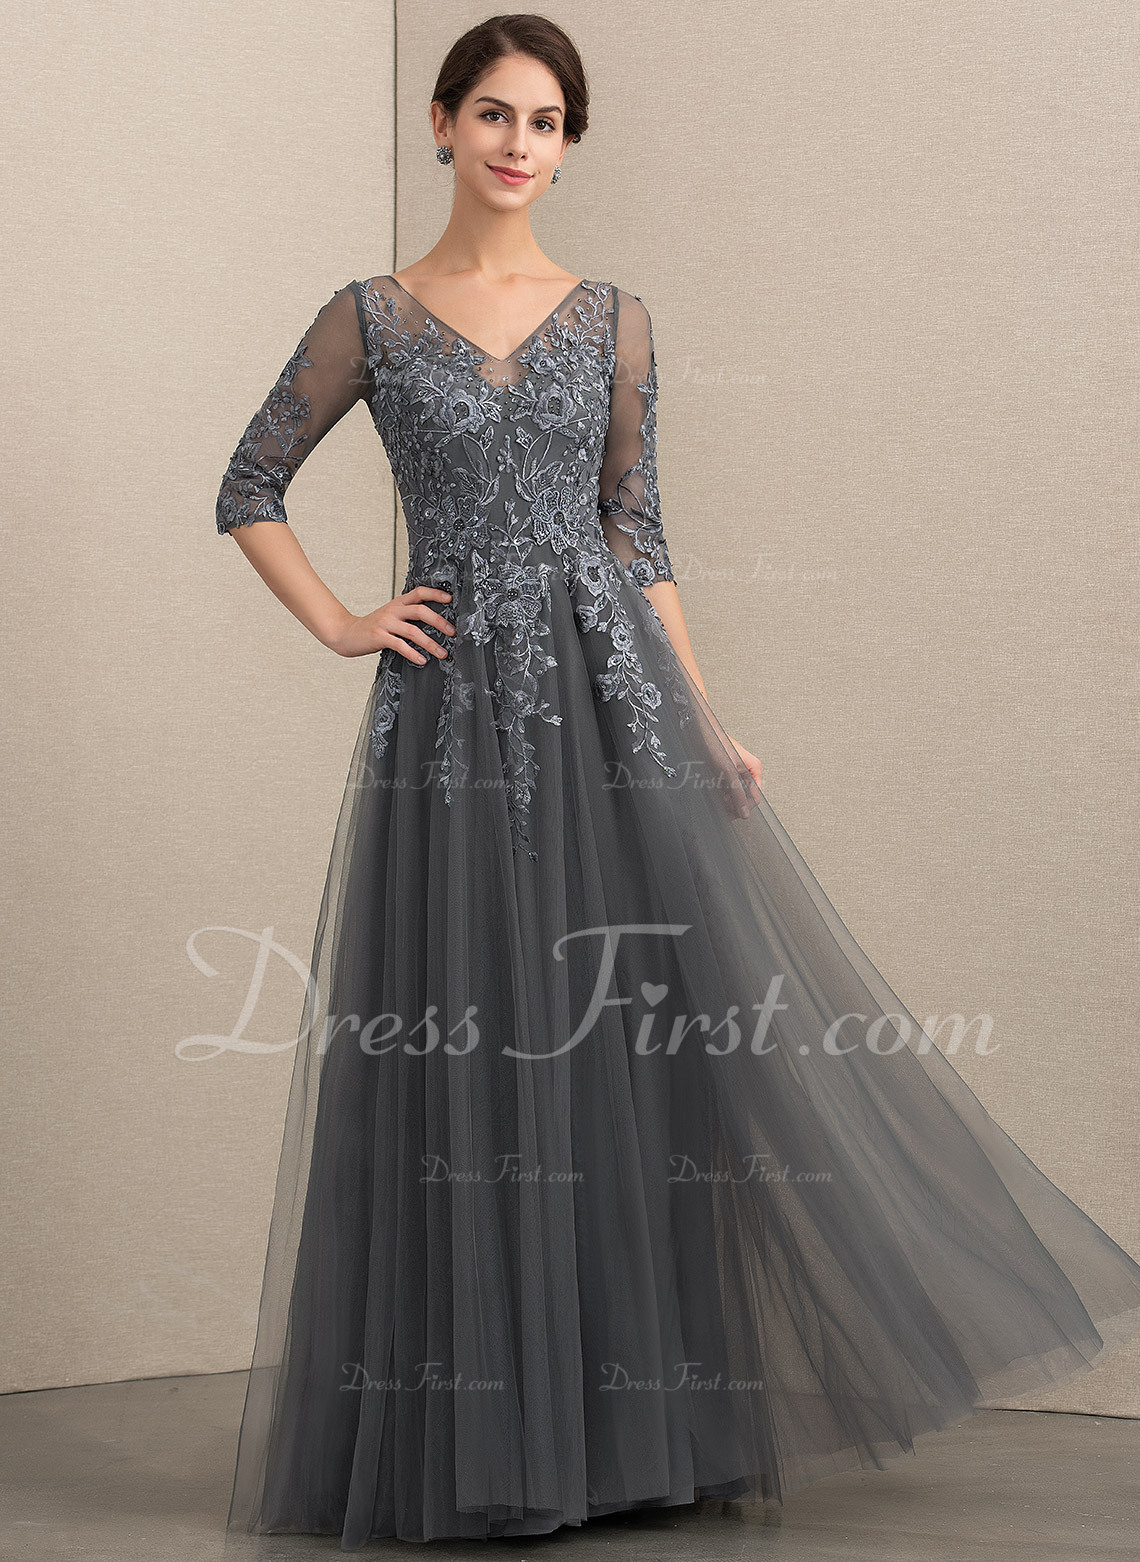 e000b6f96b1e A-Line V-neck Floor-Length Tulle Lace Mother of the Bride Dress With Beading  Sequins  152148